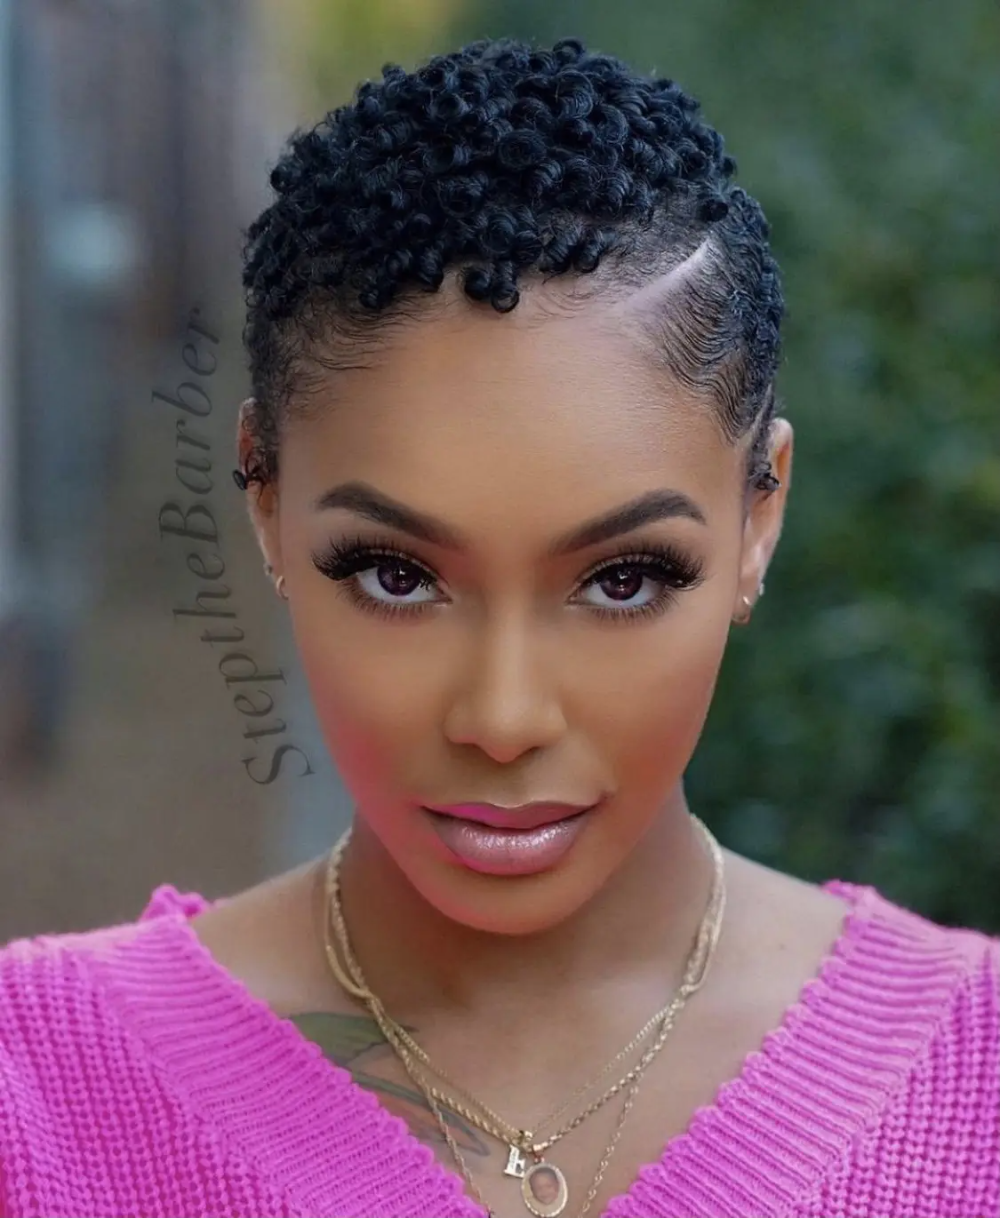 The New Big Chop  Taking Care of Your Short Natural Hair After Cutting It   Curly Nikki Gallery